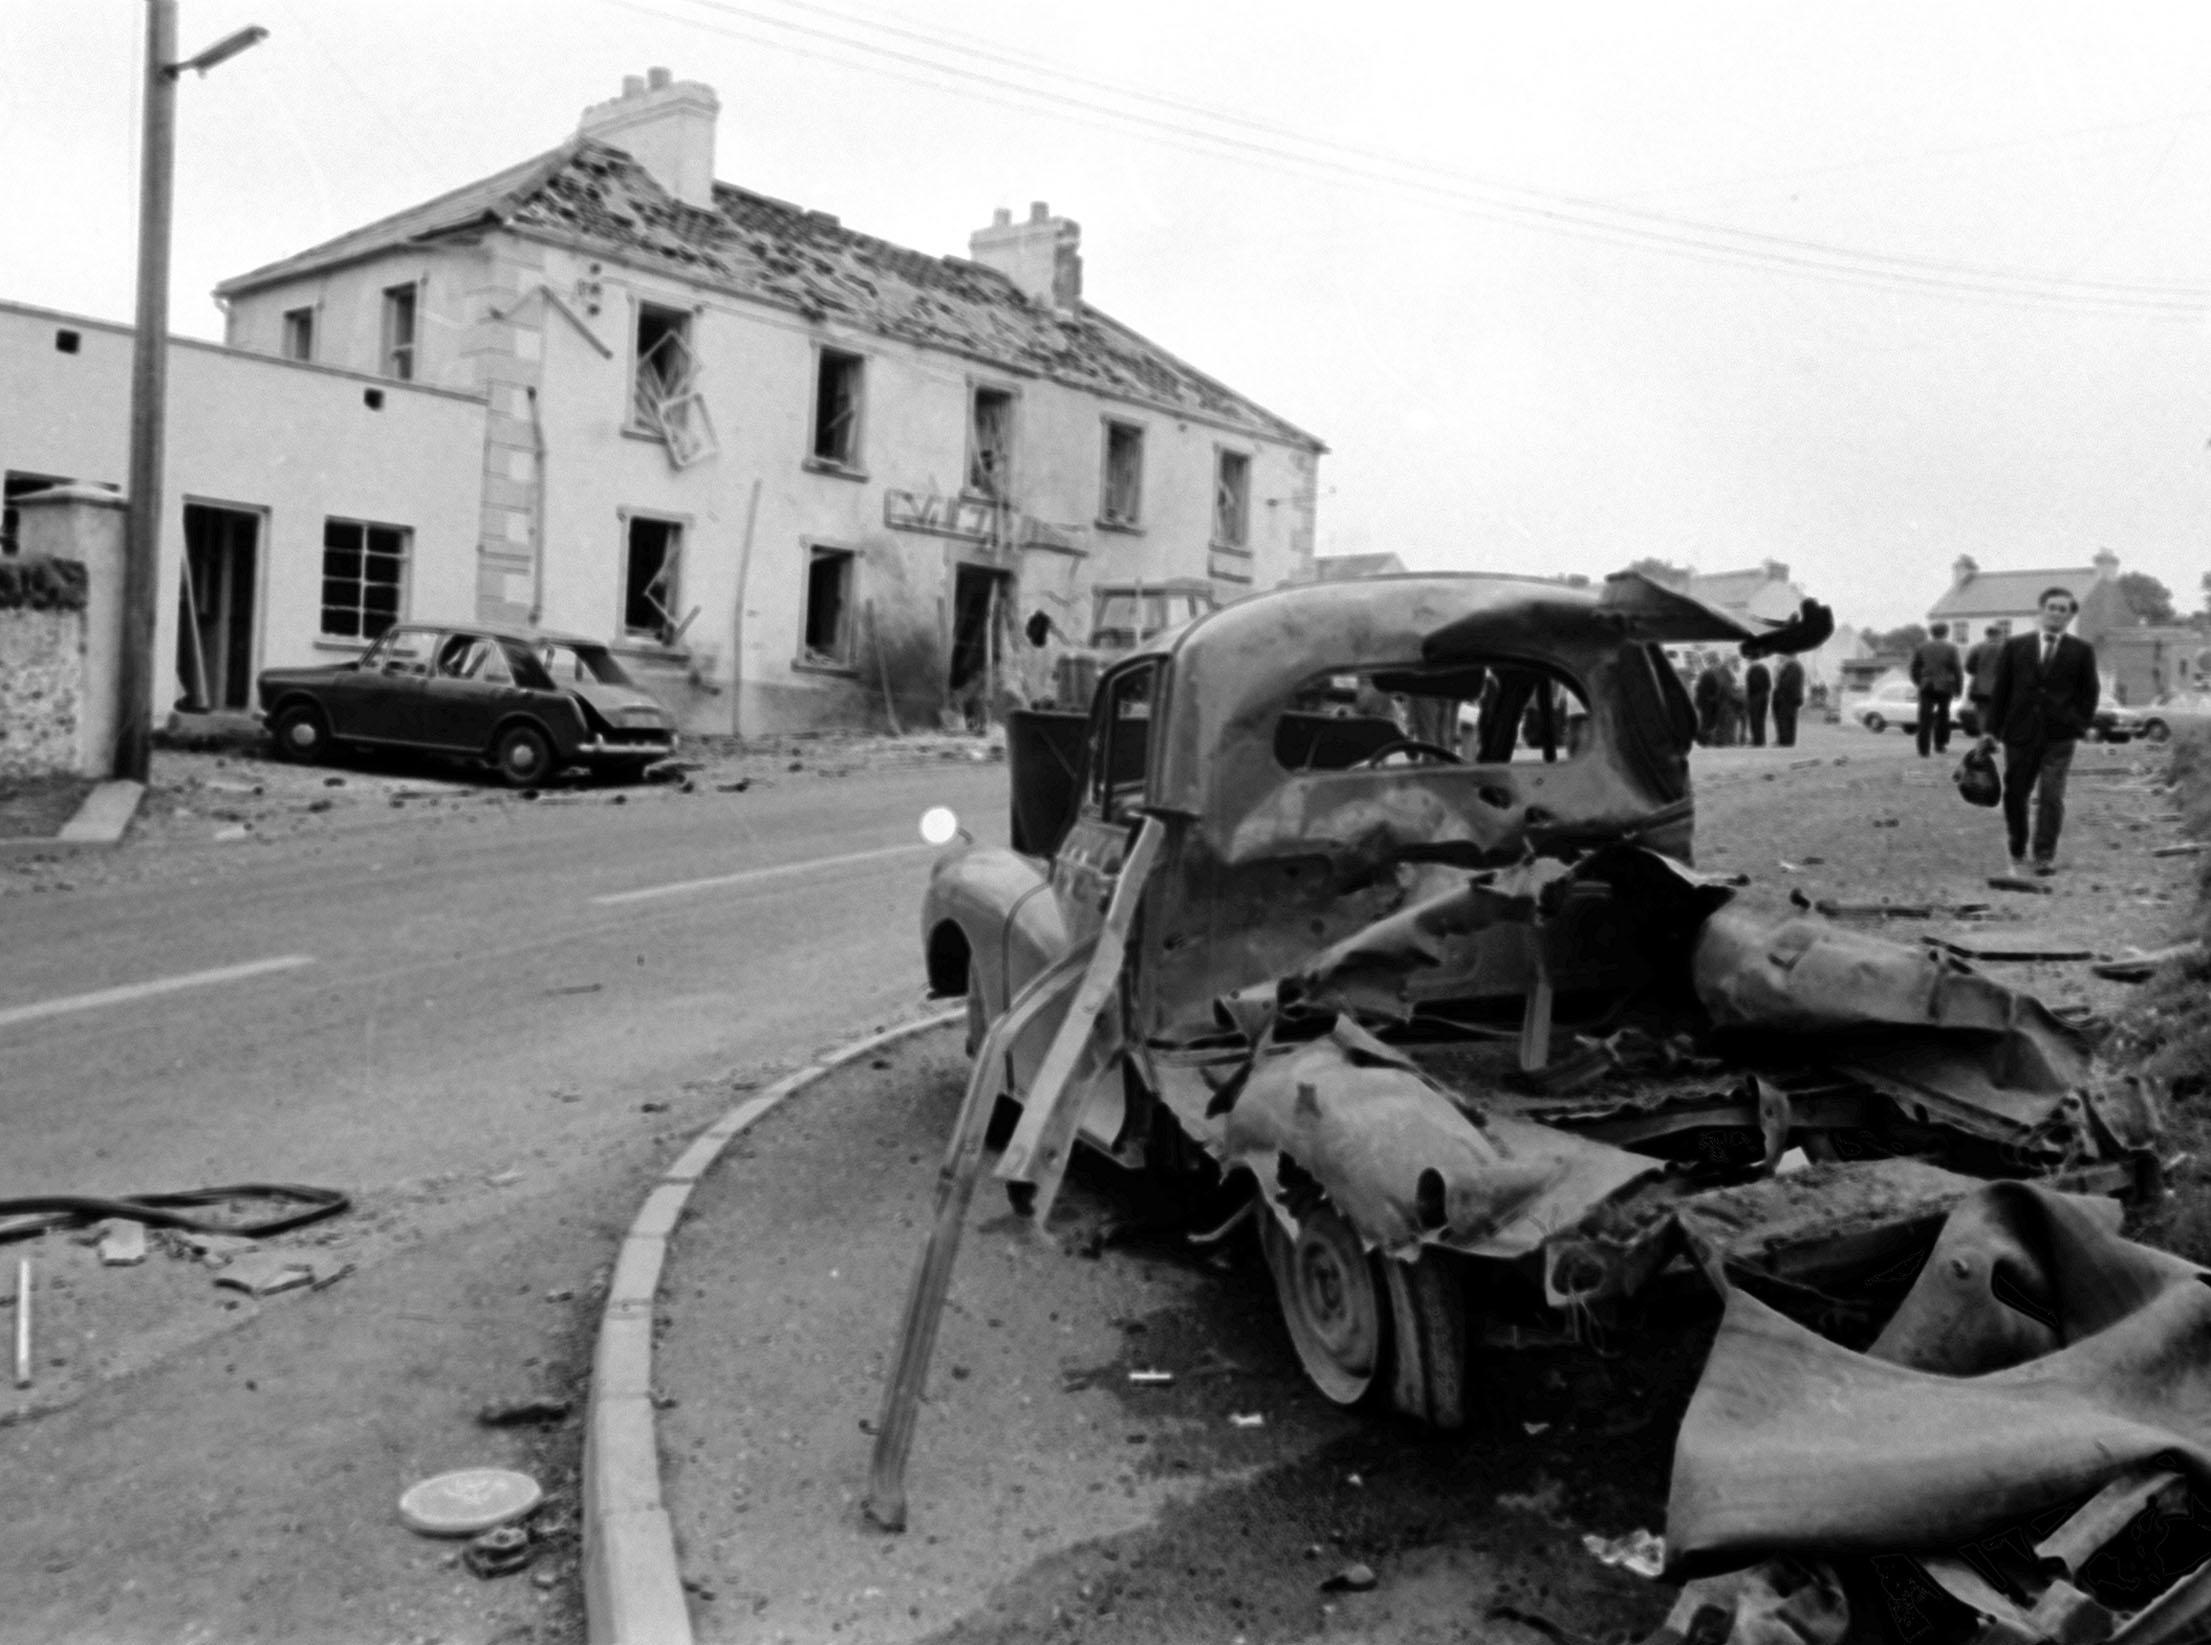 Wreckage after a bombing during the Troubles in Claudy